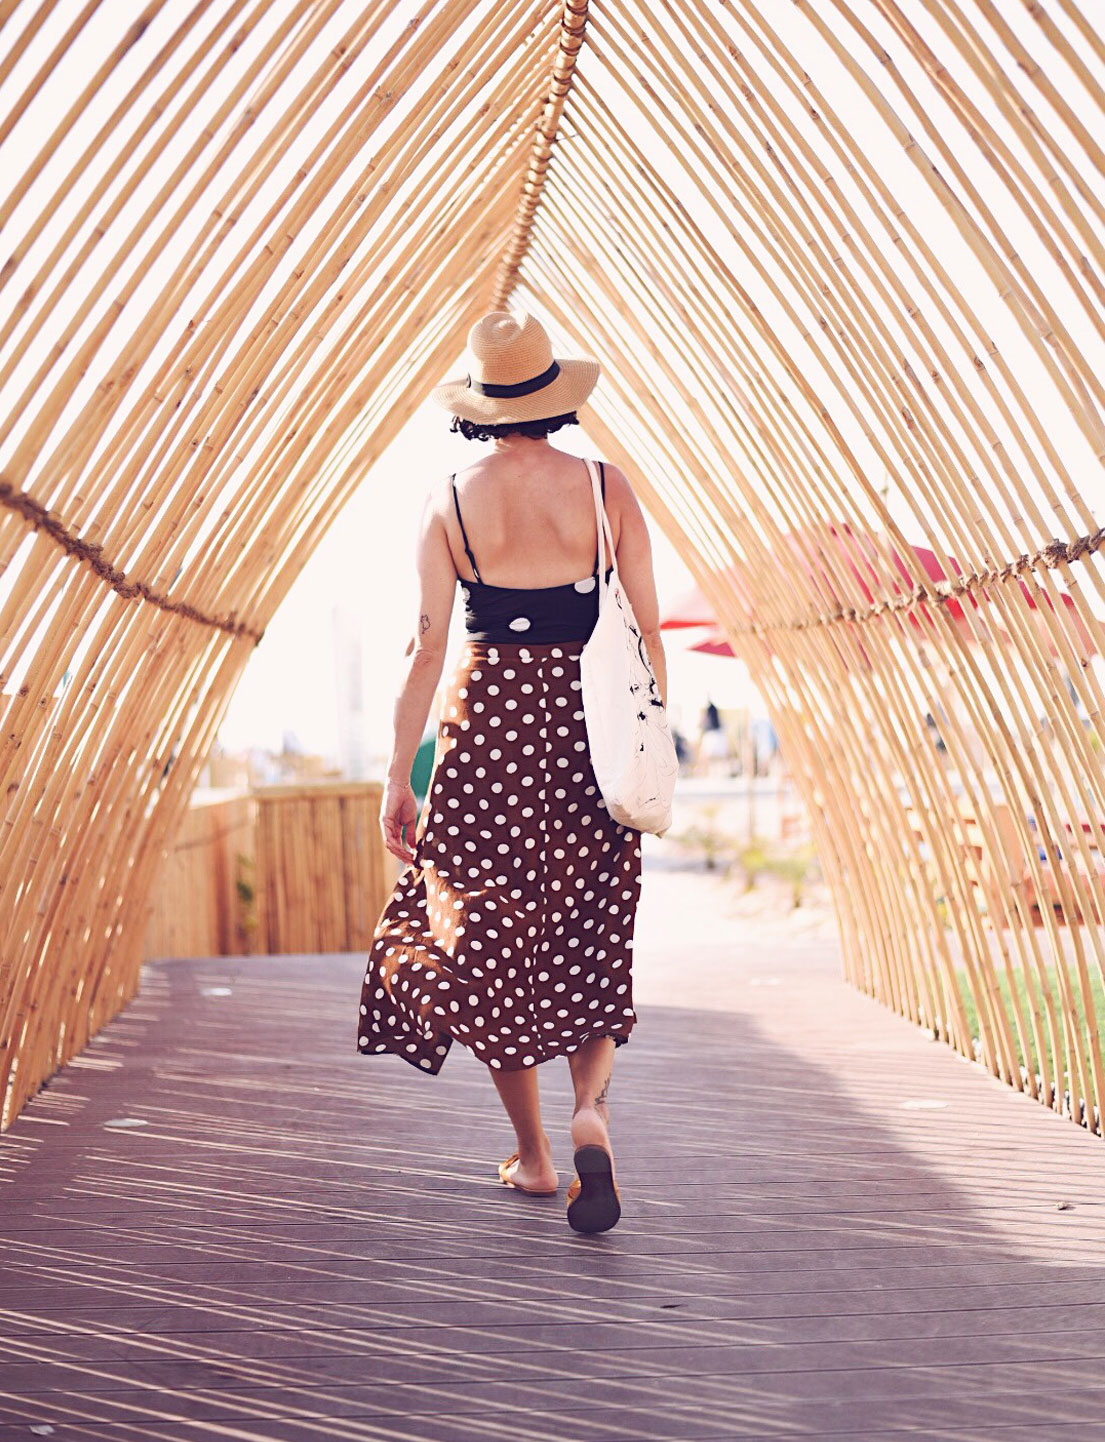 The Polka Dots Pieces You Will Go Crazy For